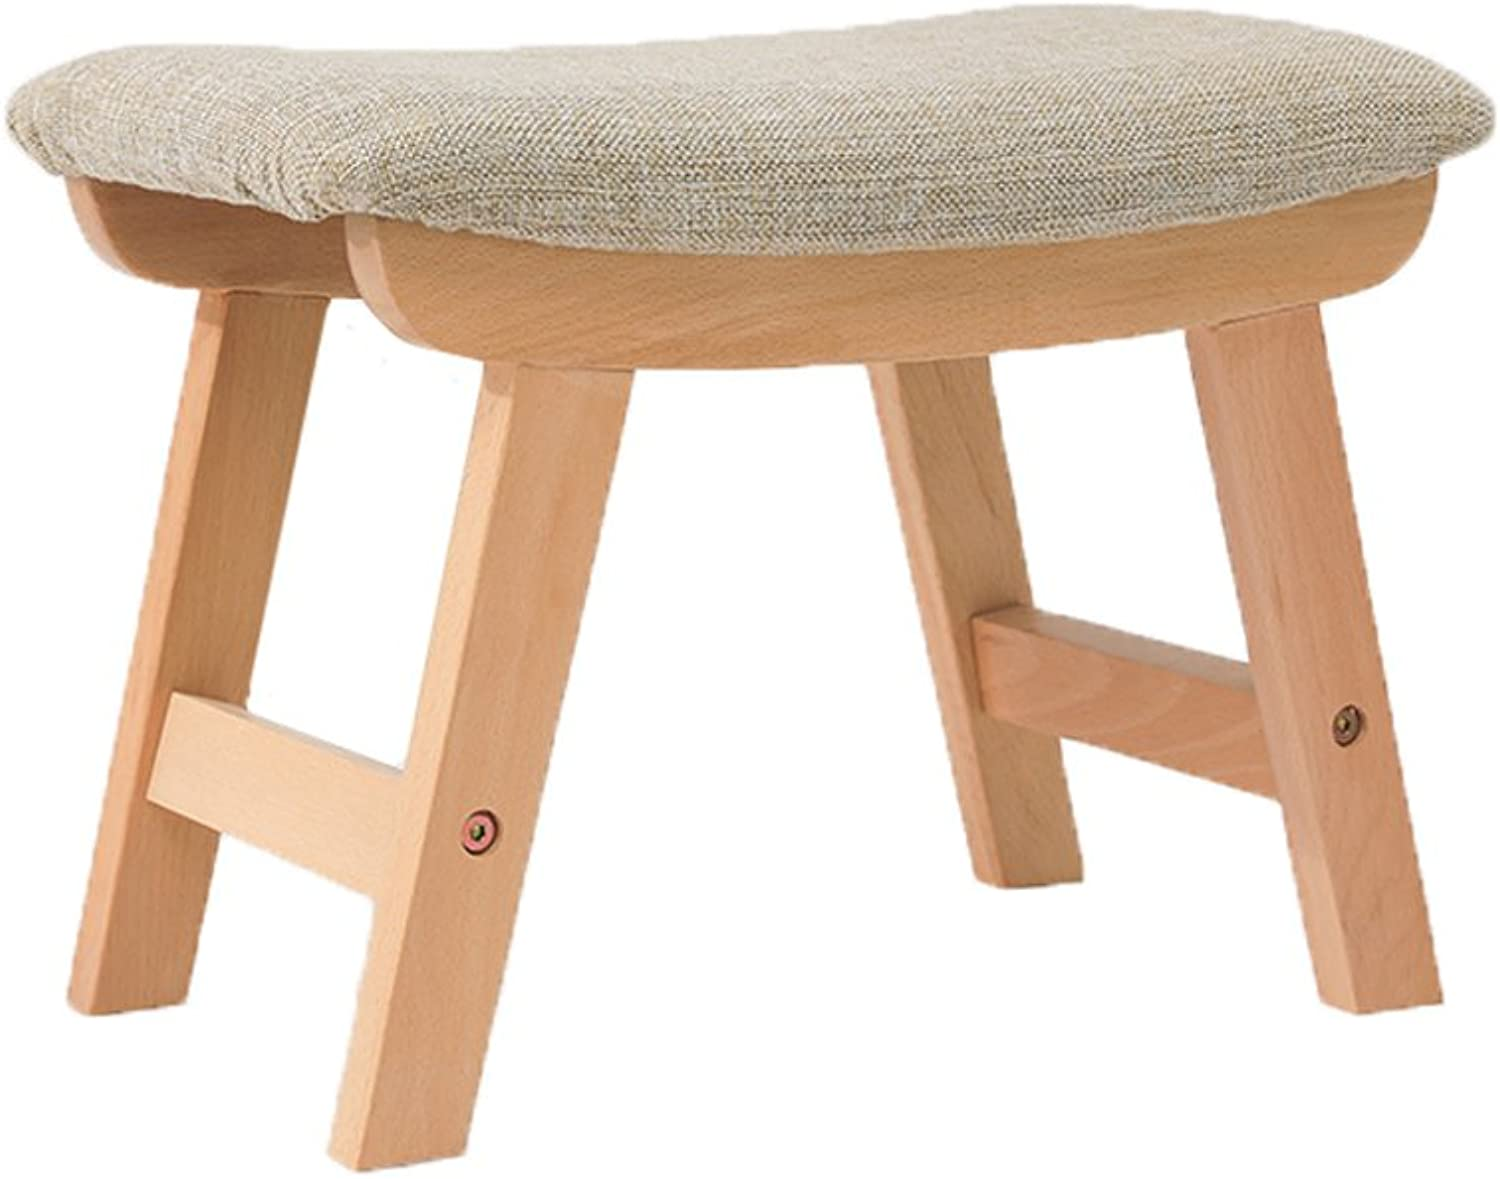 DYFYMX,Stylish Stool Fabric Stool, Fashion Creative Sofa Stool Adult shoes Bench Solid Wood Stool Furniture (color   D)